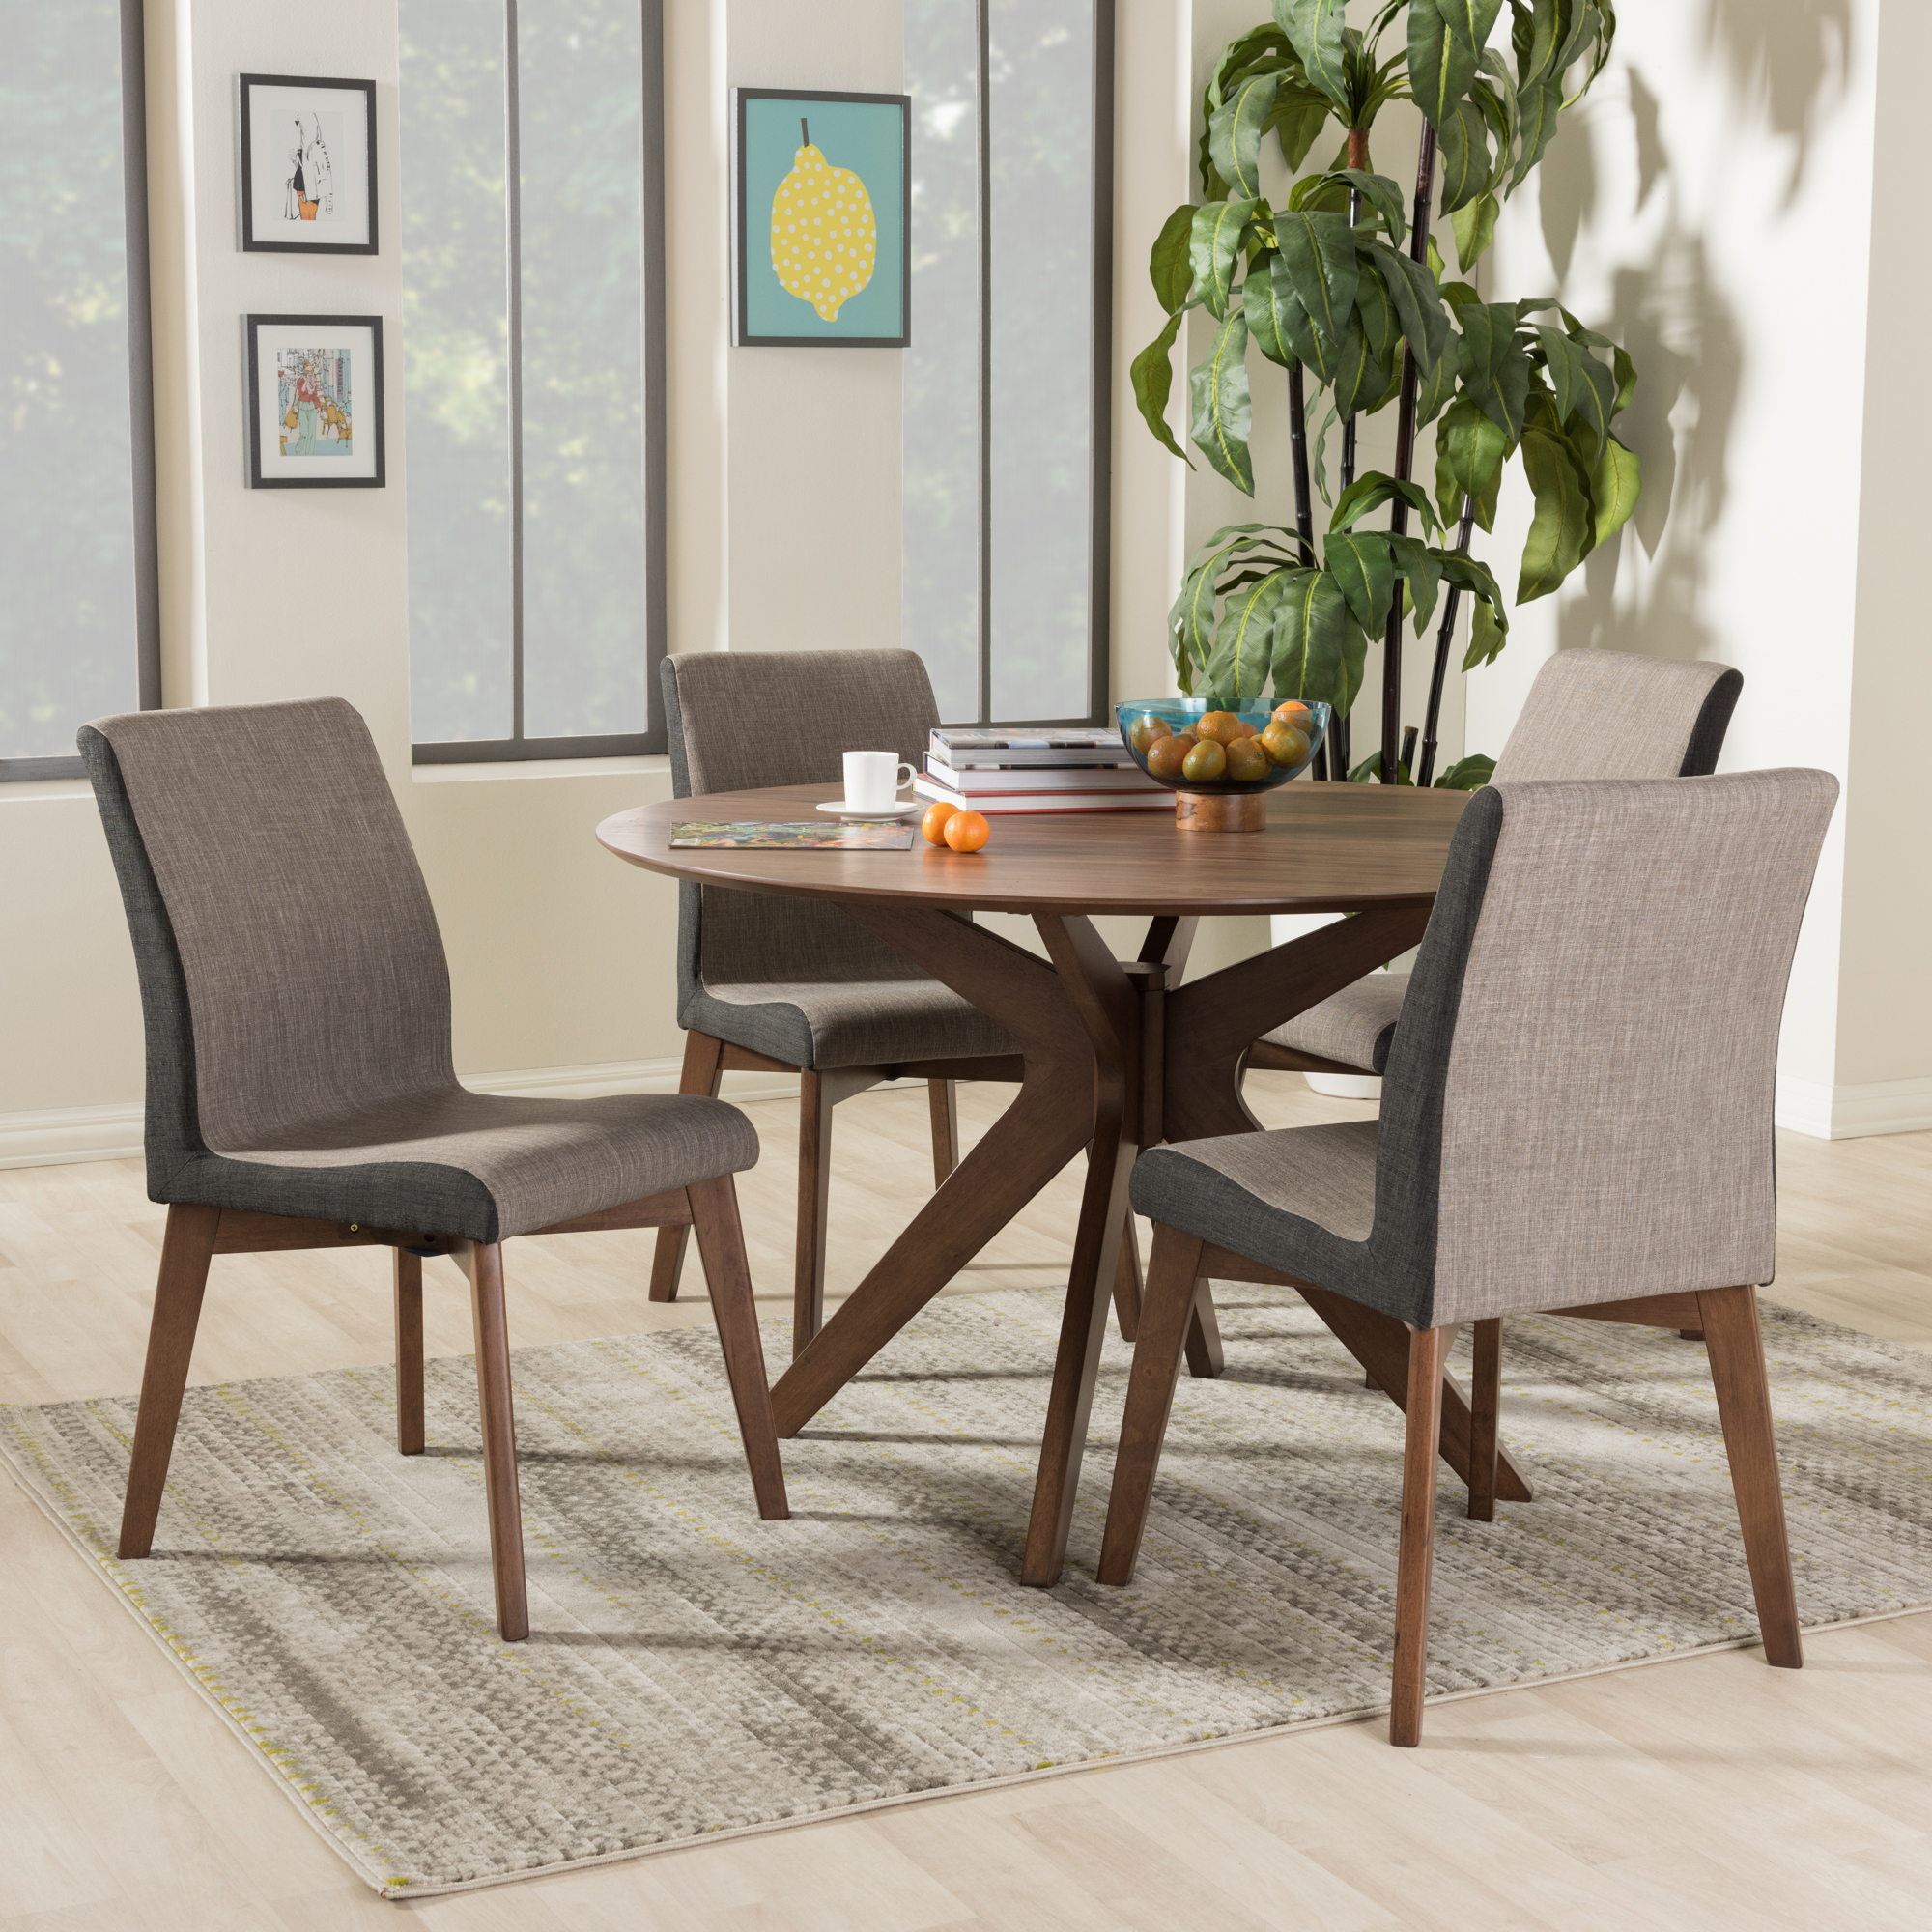 ... Baxton Studio Kimberly Mid Century Modern Walnut Wood Round 5 Piece Dining  Set